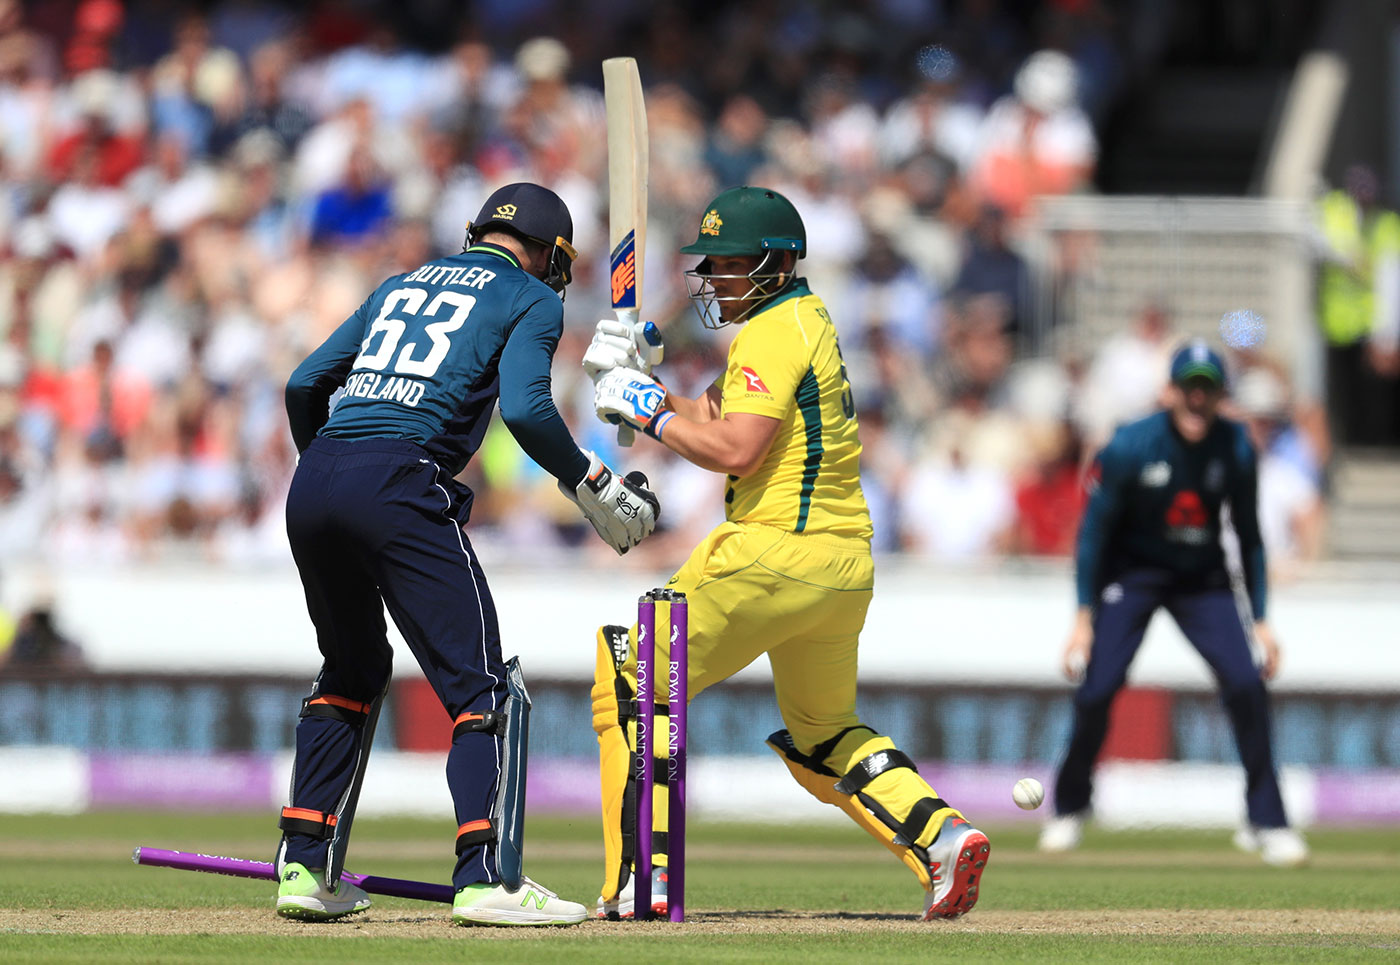 Aaron Finch Confident of Good Show in One-Off T20I Against England